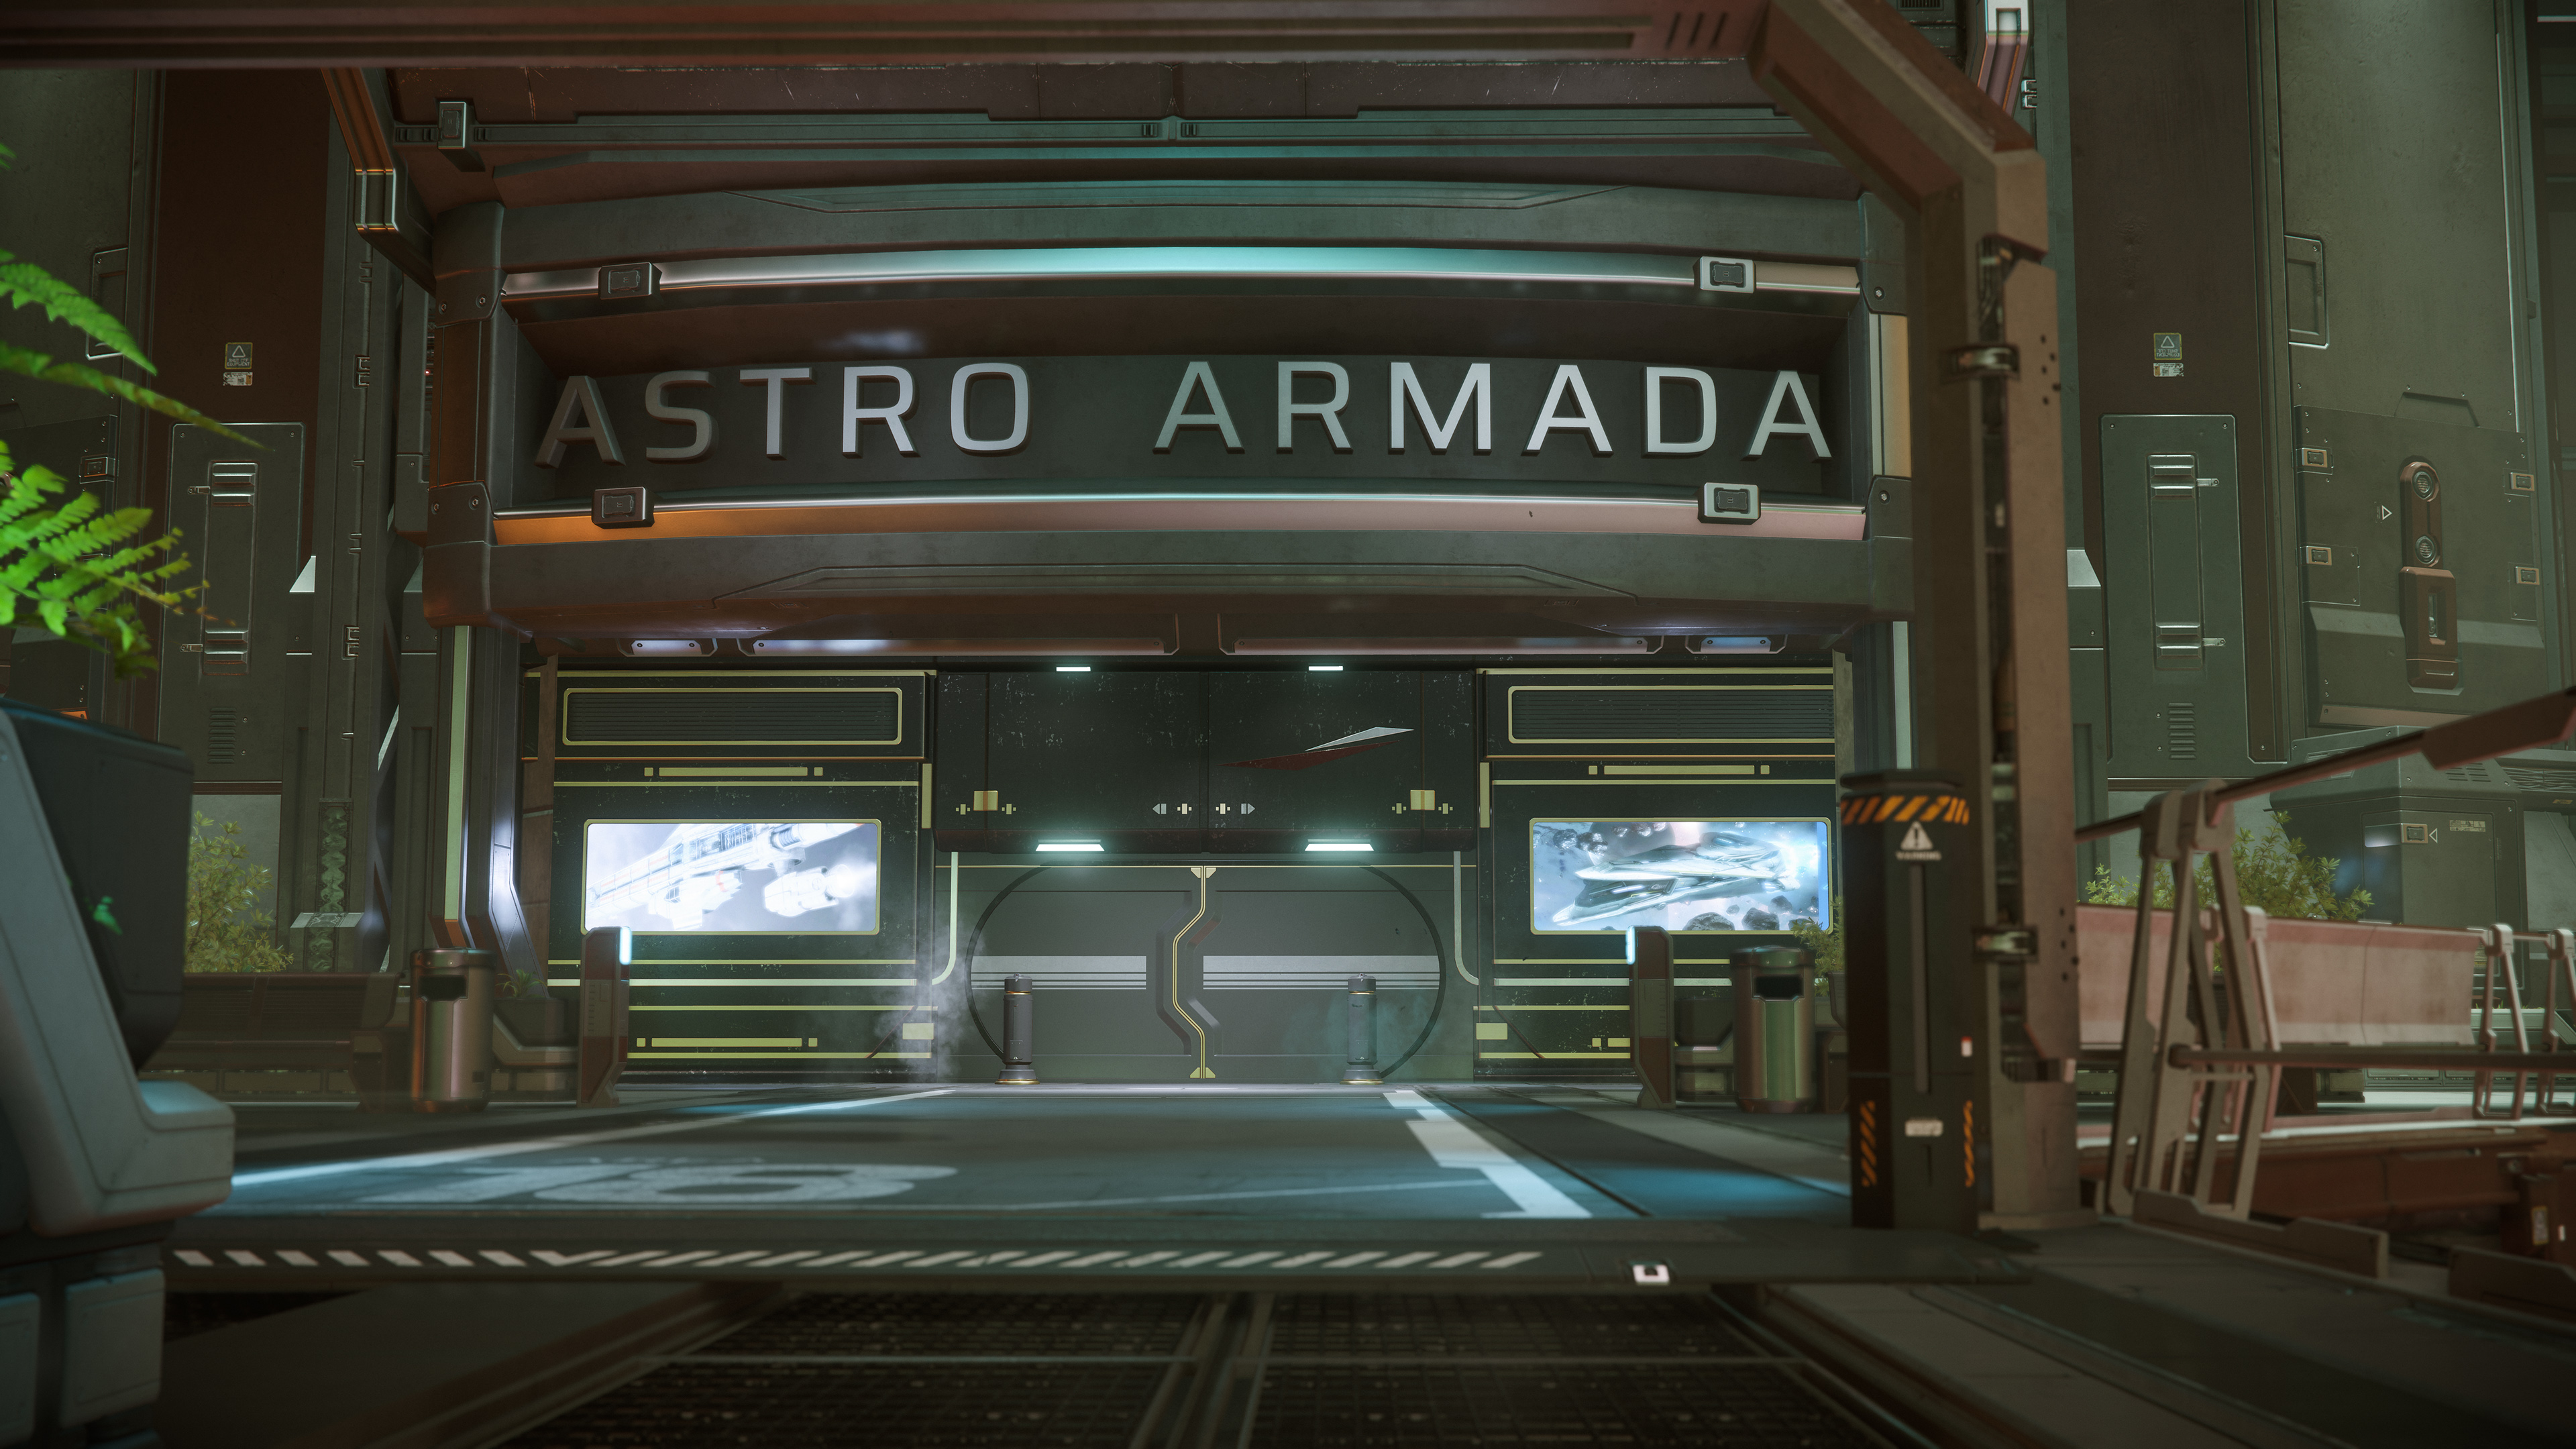 Astro Armada - Star Citizen Wiki